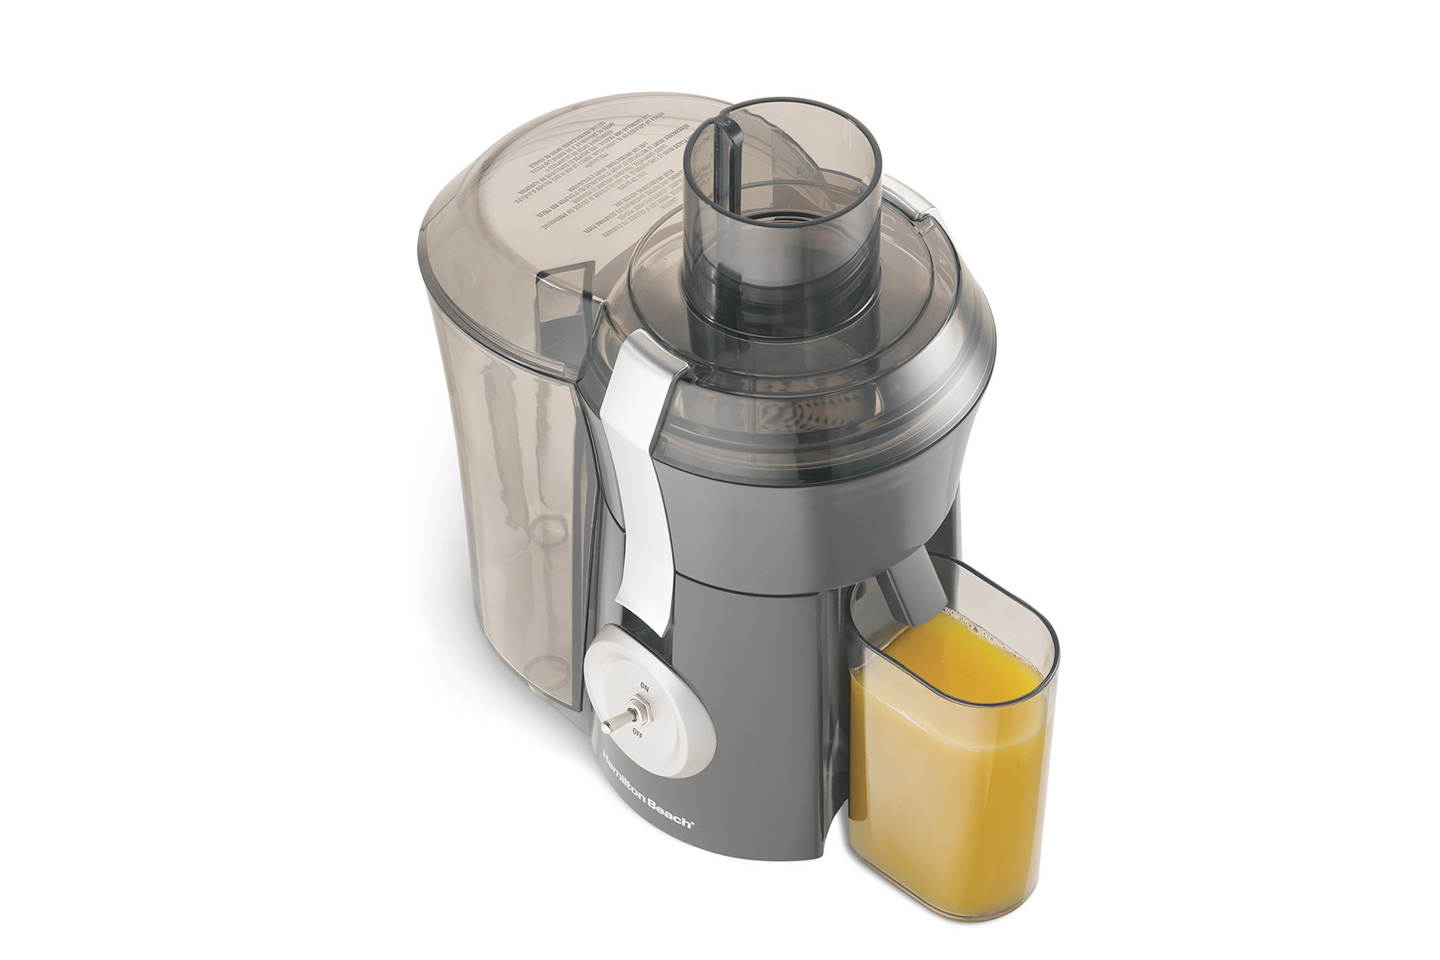 Hamilton Beach Big Mouth Pro Juice Extractor Review | HeartyBlends.co